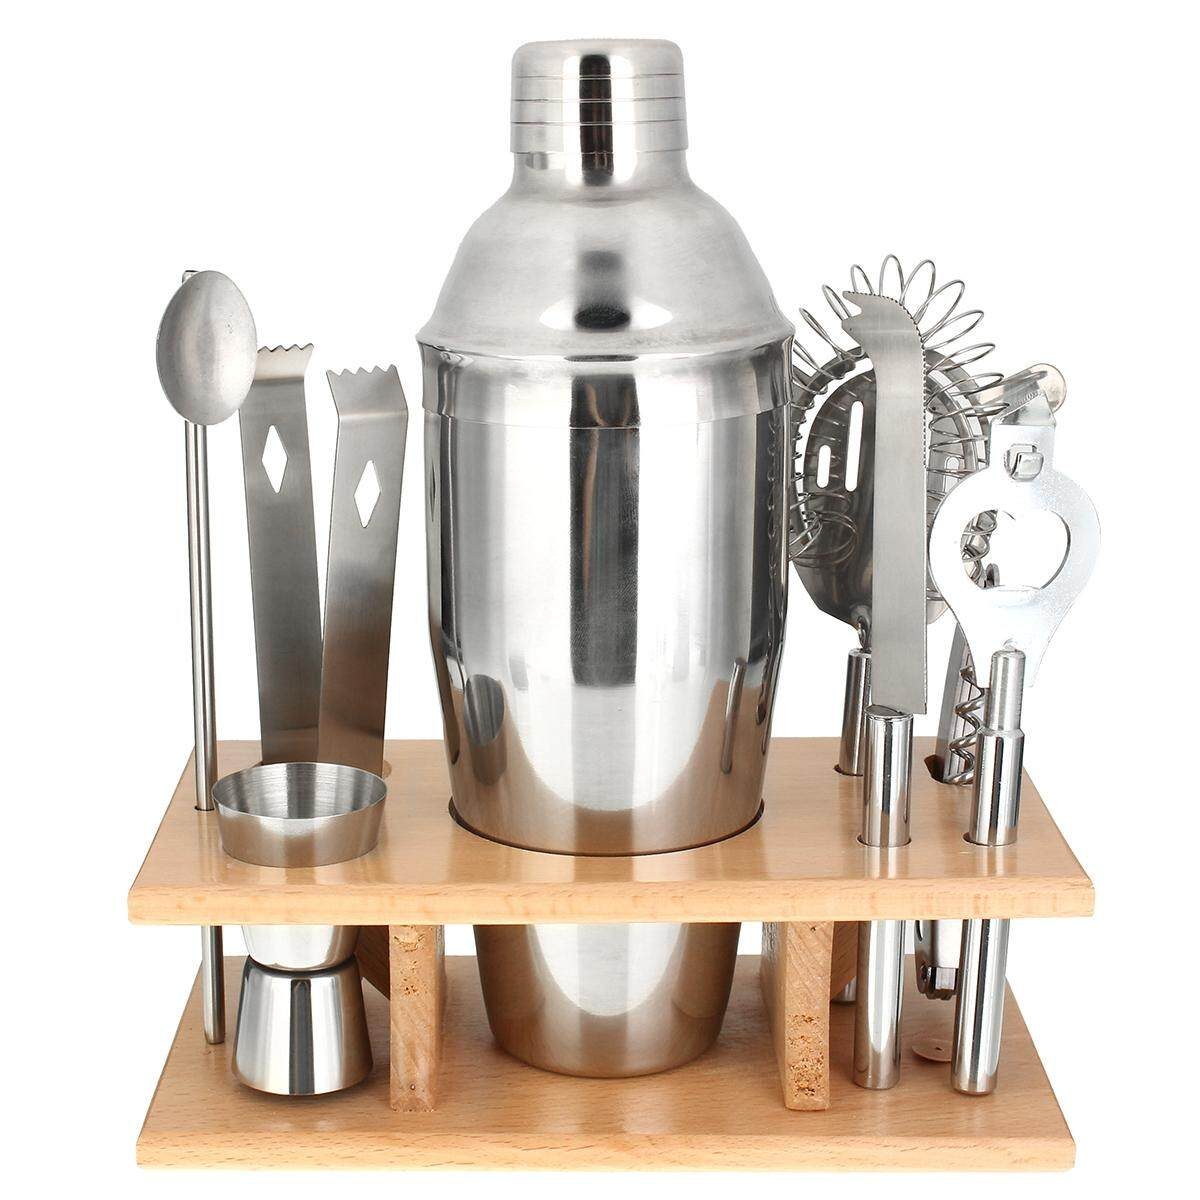 Stainless Steel Cocktail Shakers Mixer Drink Bartender Martini Bar Set Tools Kit750ml By Ferry.